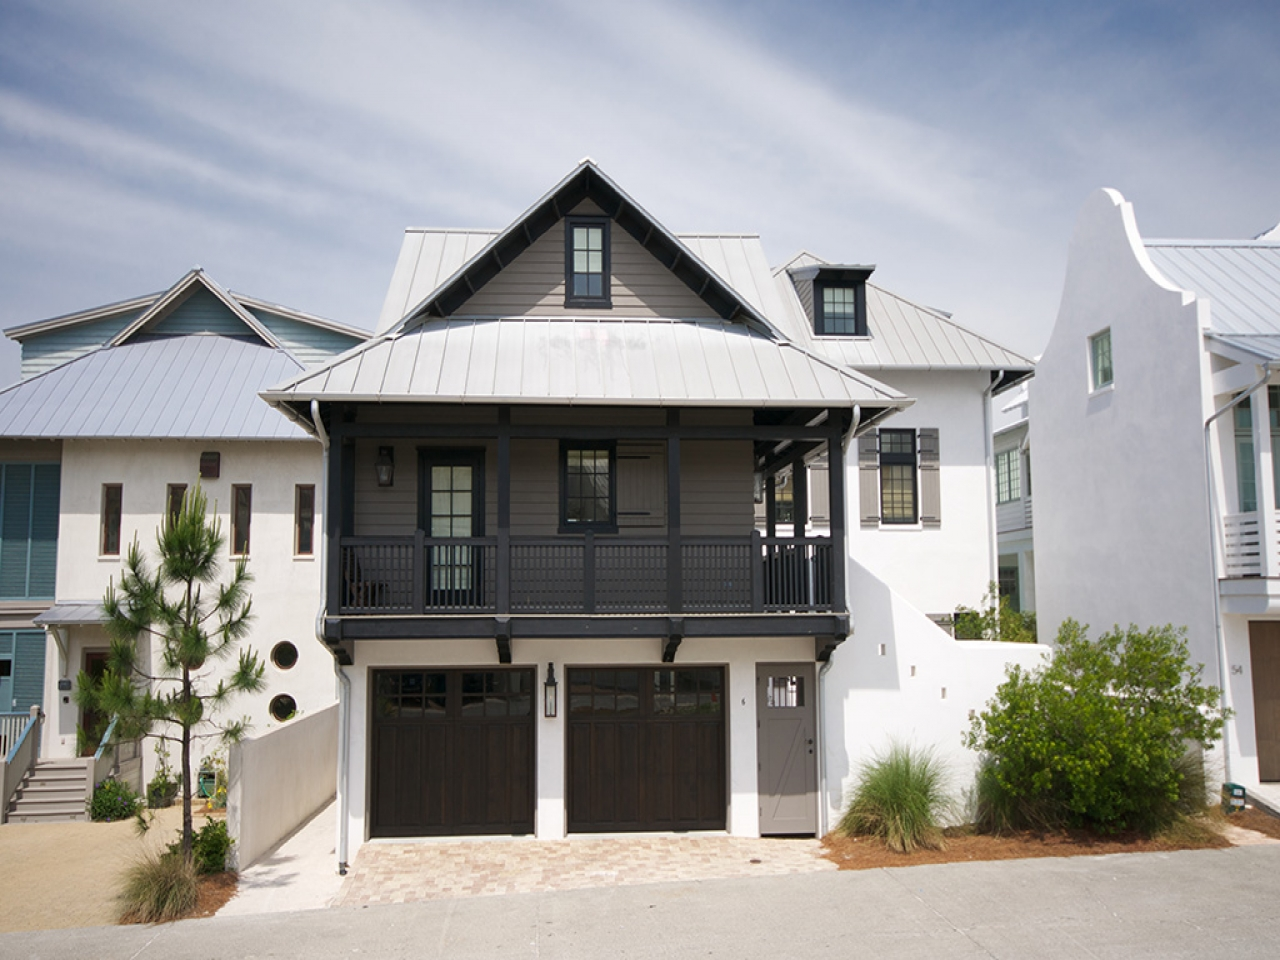 Hartsfield carriage house rosemary beach carriage house for Rental property floor plans